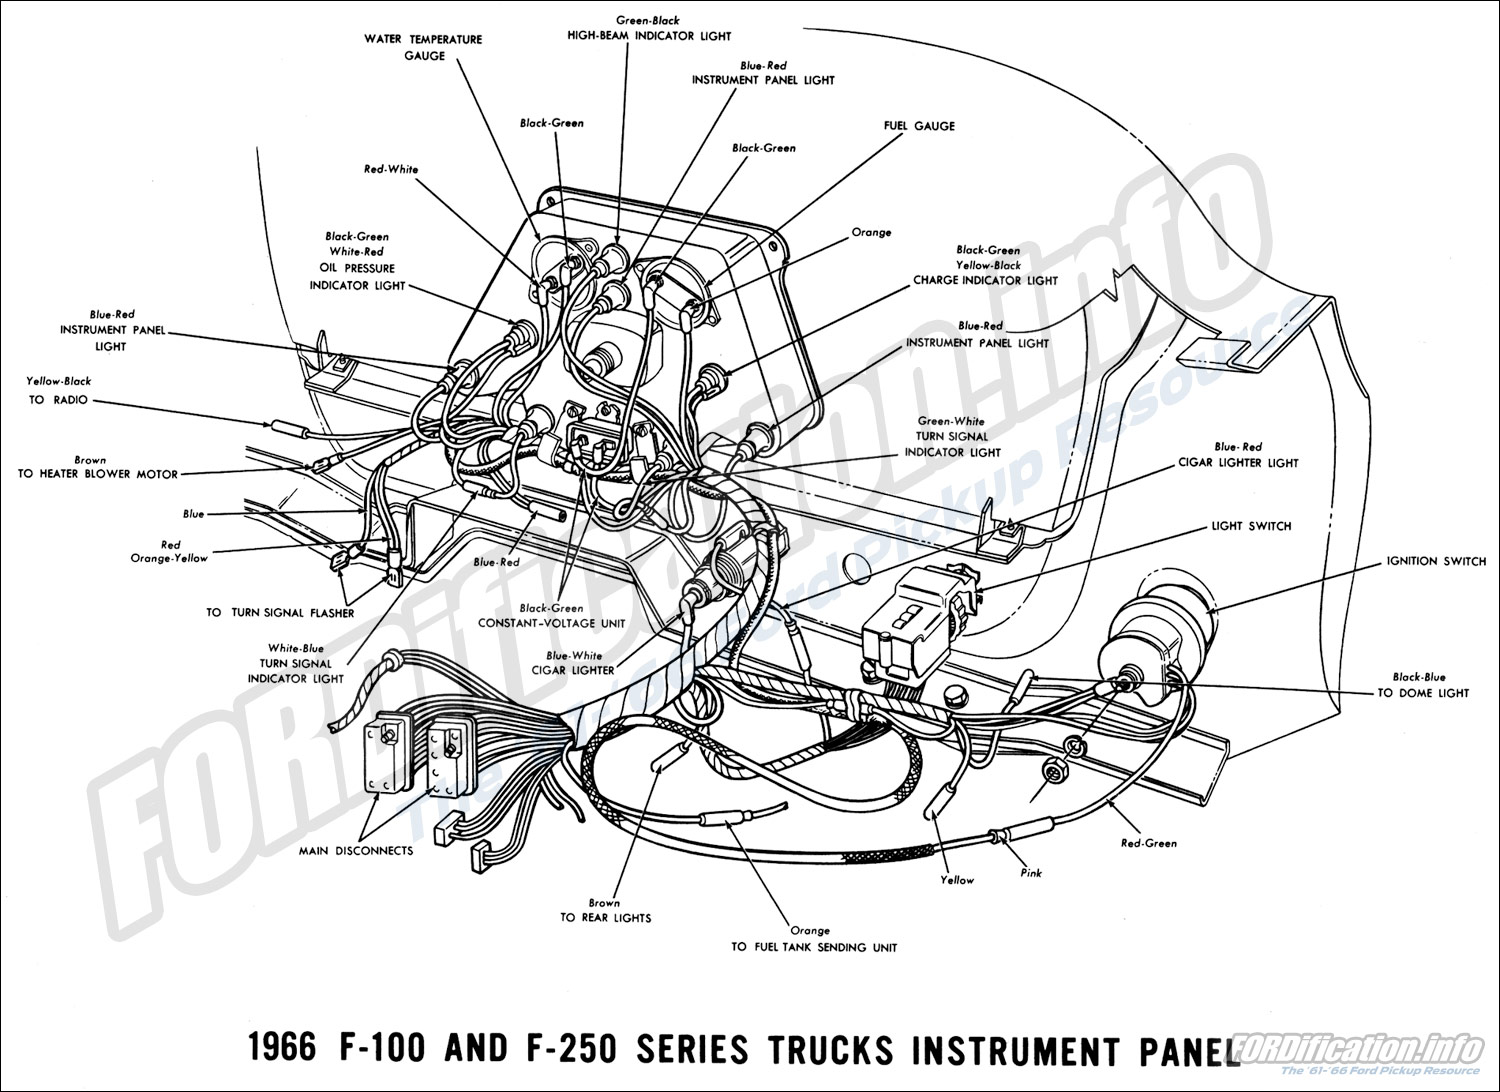 1966 Ford Truck Wiring Diagrams Fordification Info The